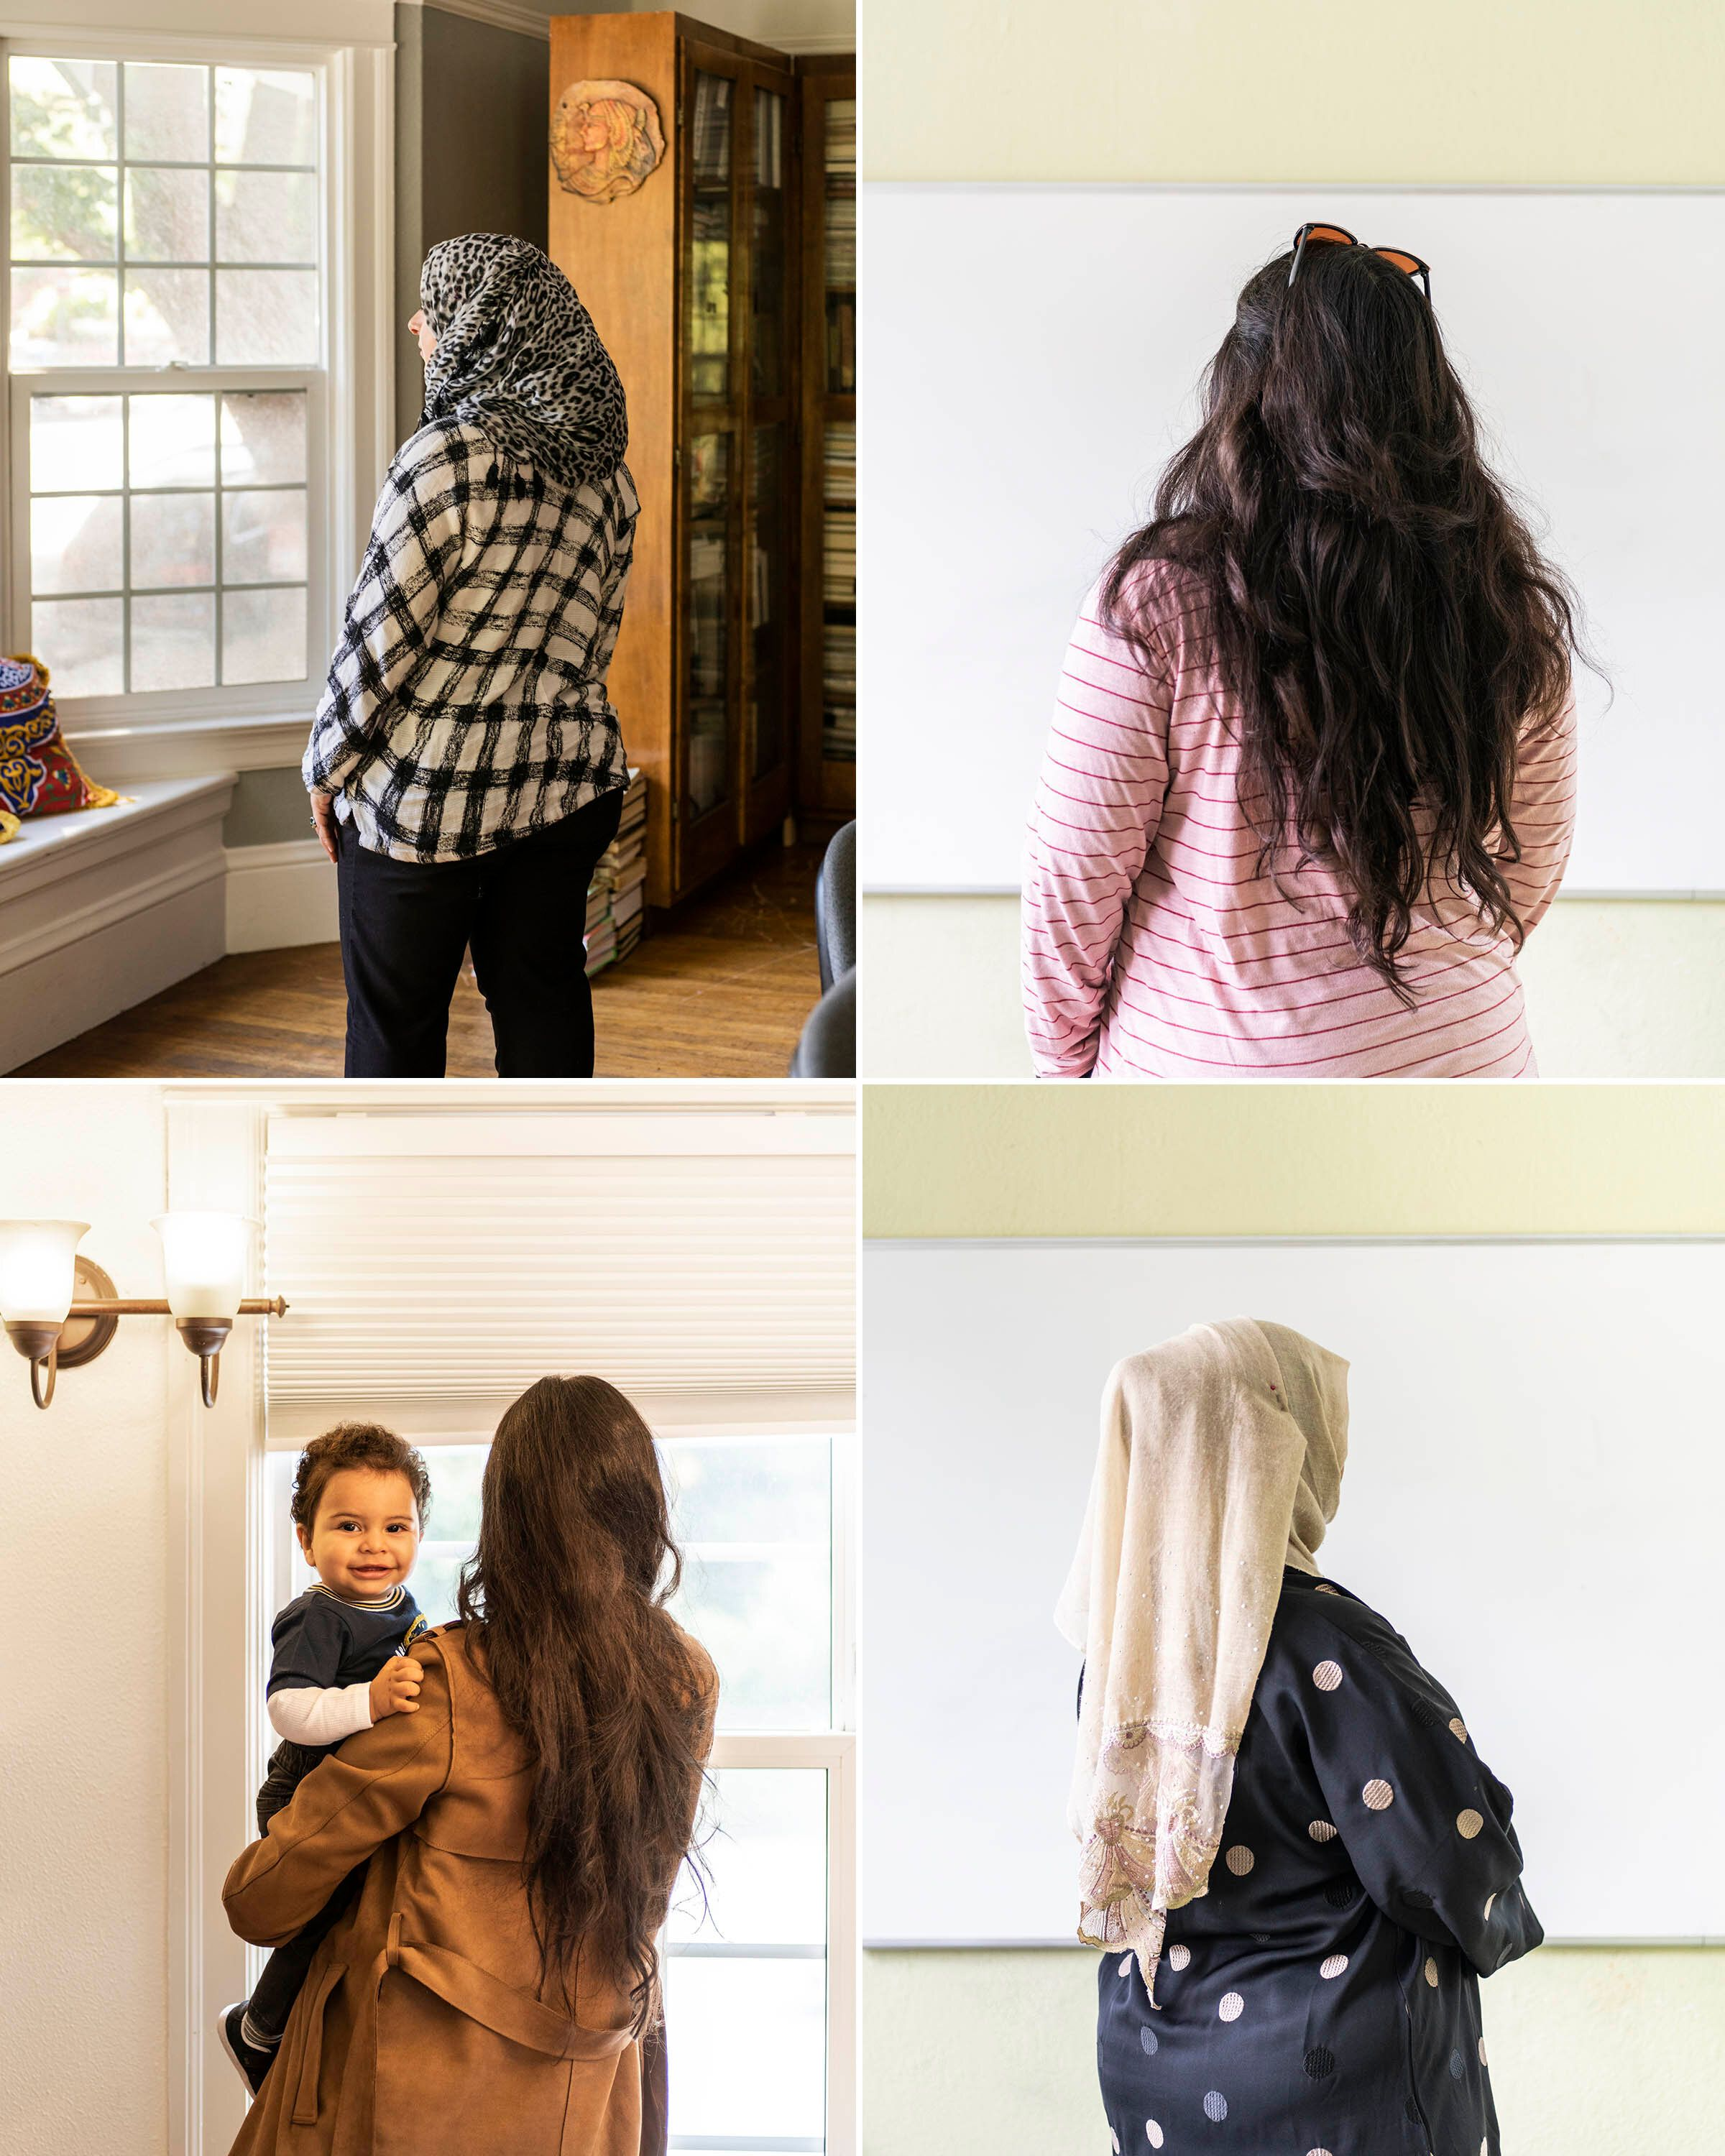 Domestic violence survivors who spoke to HuffPost faced multiple challenges: securing housing, navigating the U.S. legal syst